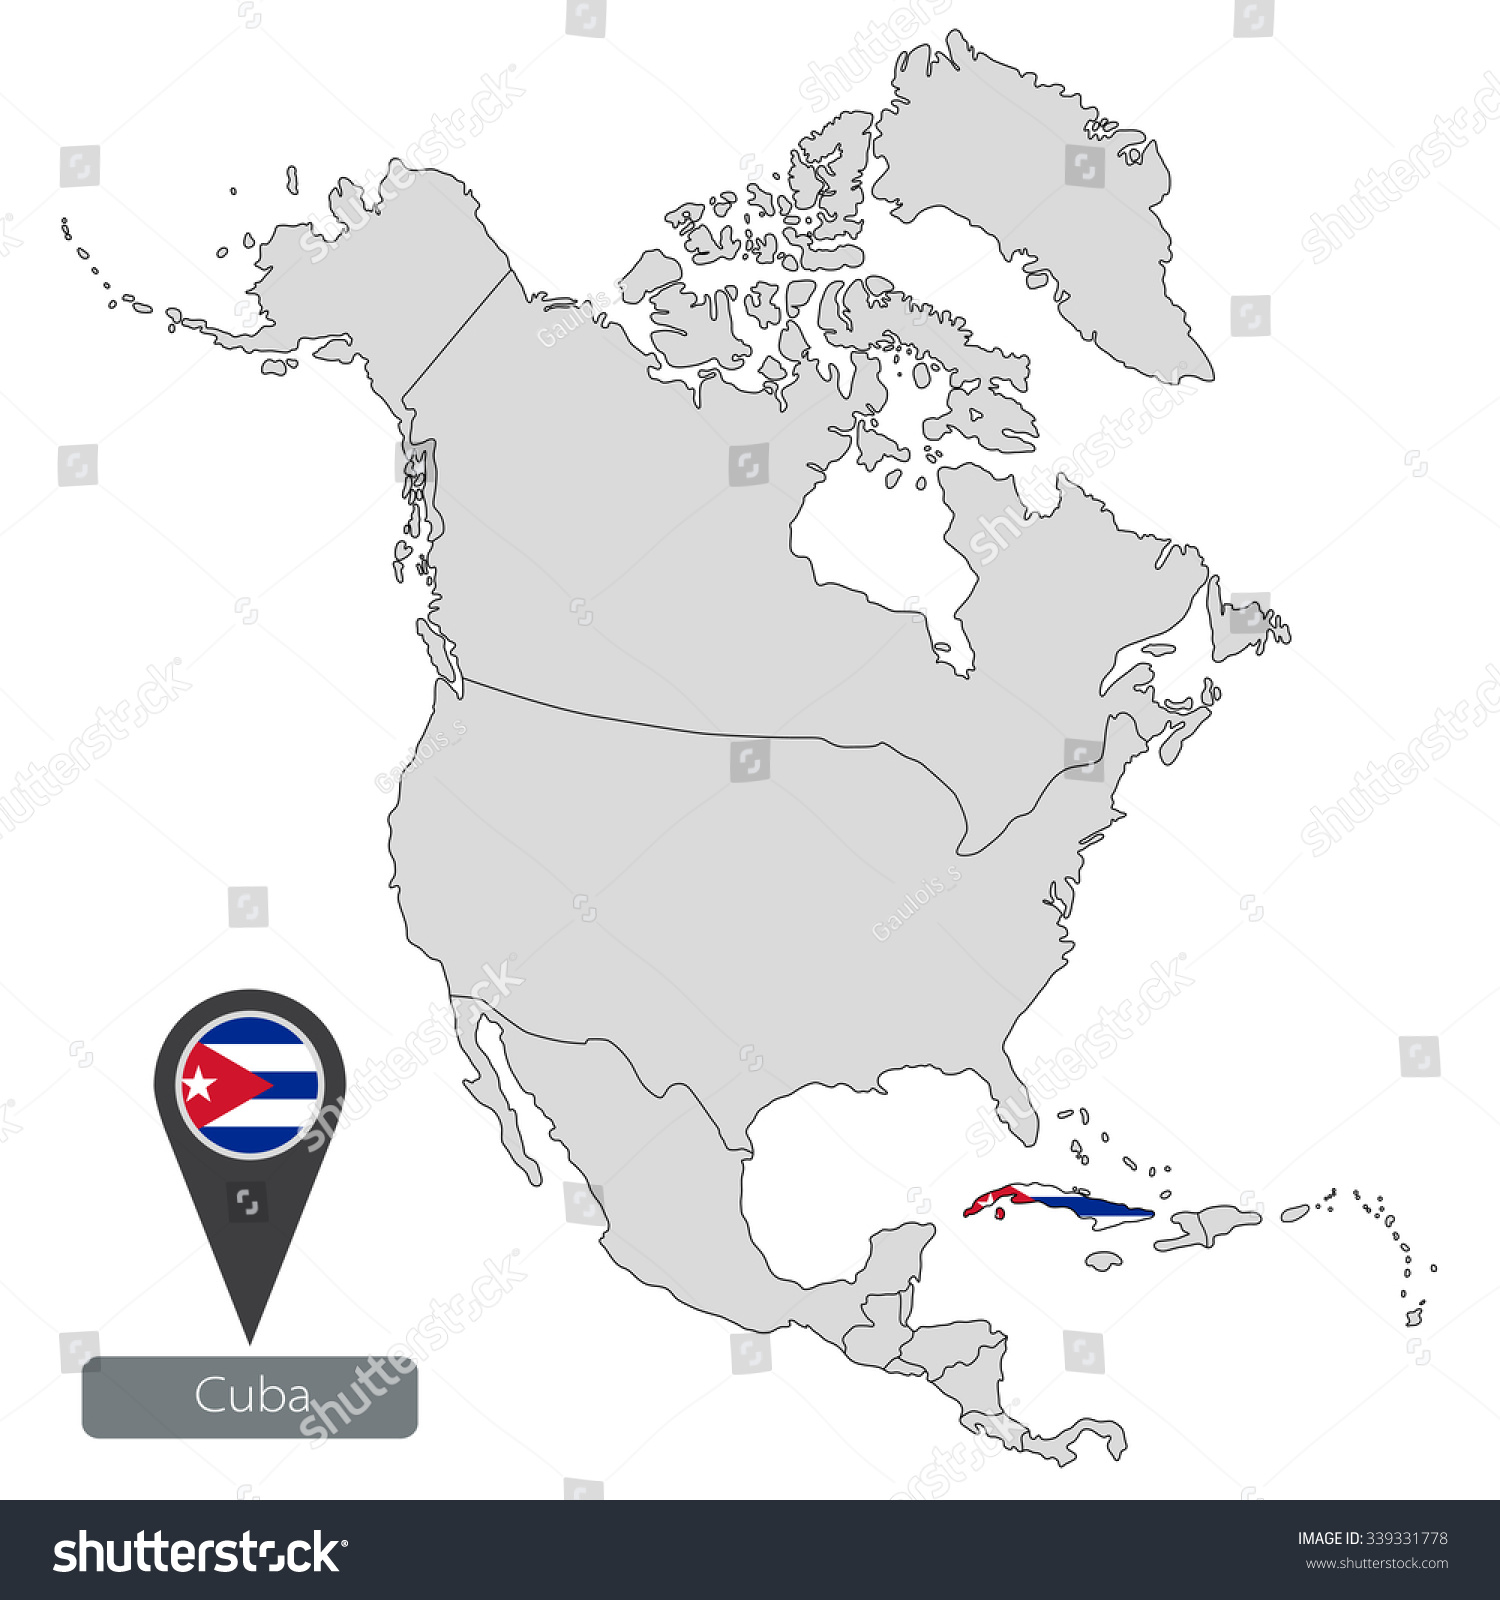 Map Cuba Official Flag Location North Stock Vector HD Royalty Free